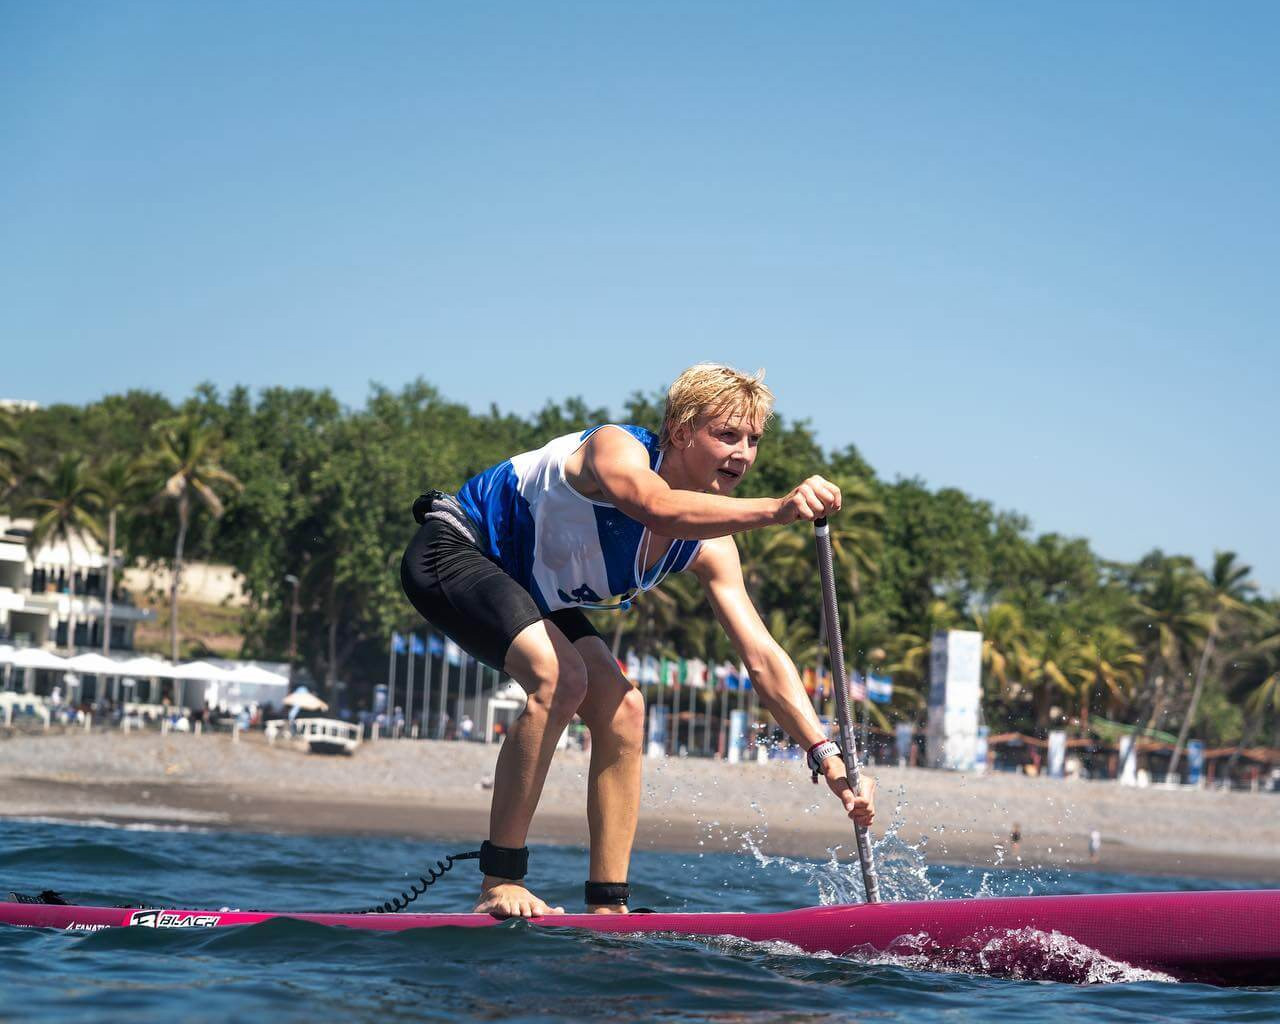 Fanatic ISA Sup World Champs Wins!